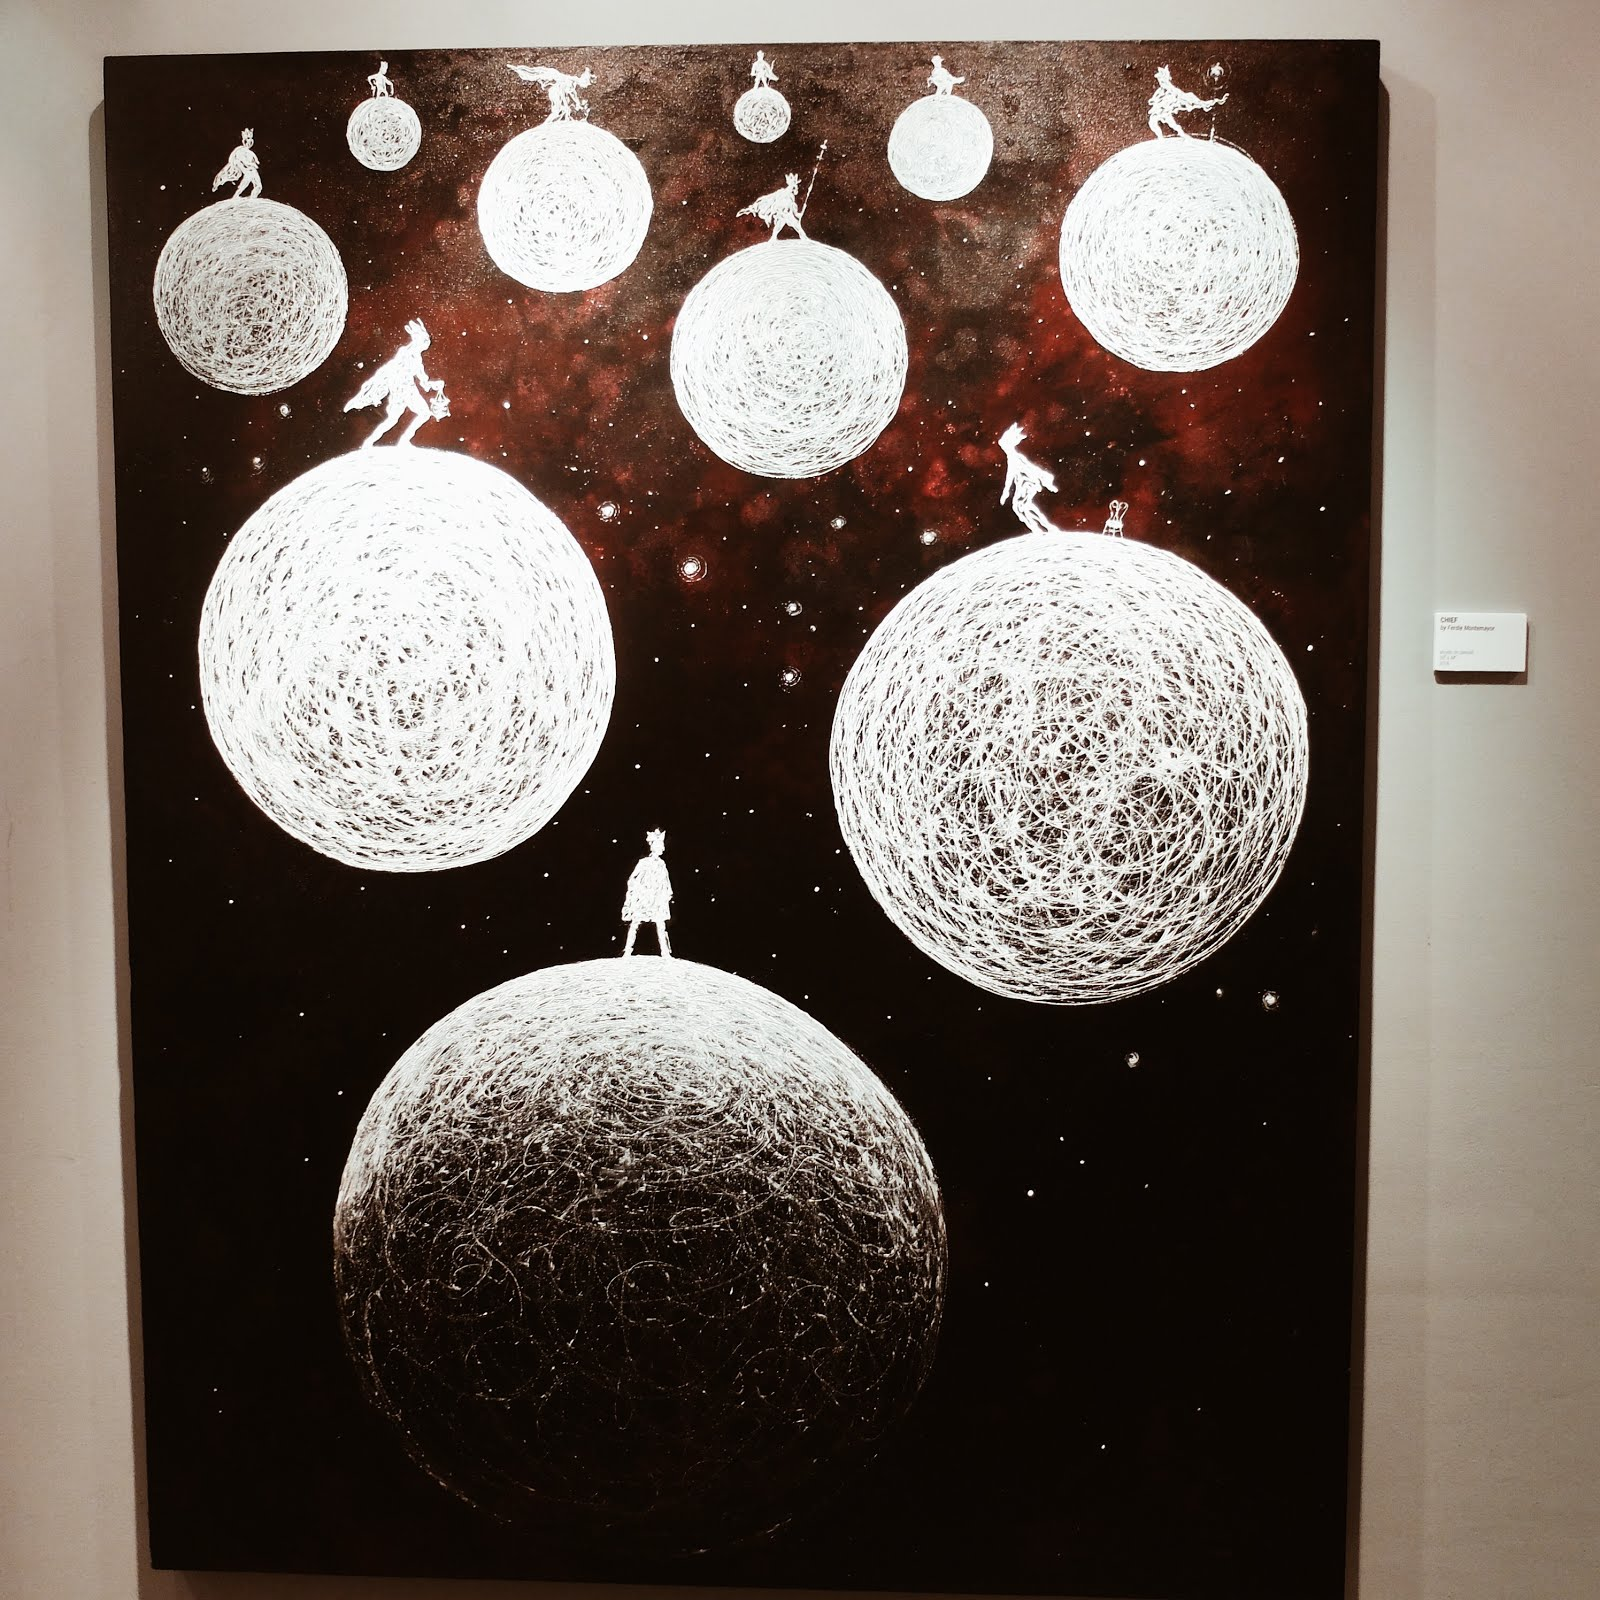 25 favorites from Artfairph 2016 | heyladyspring.com